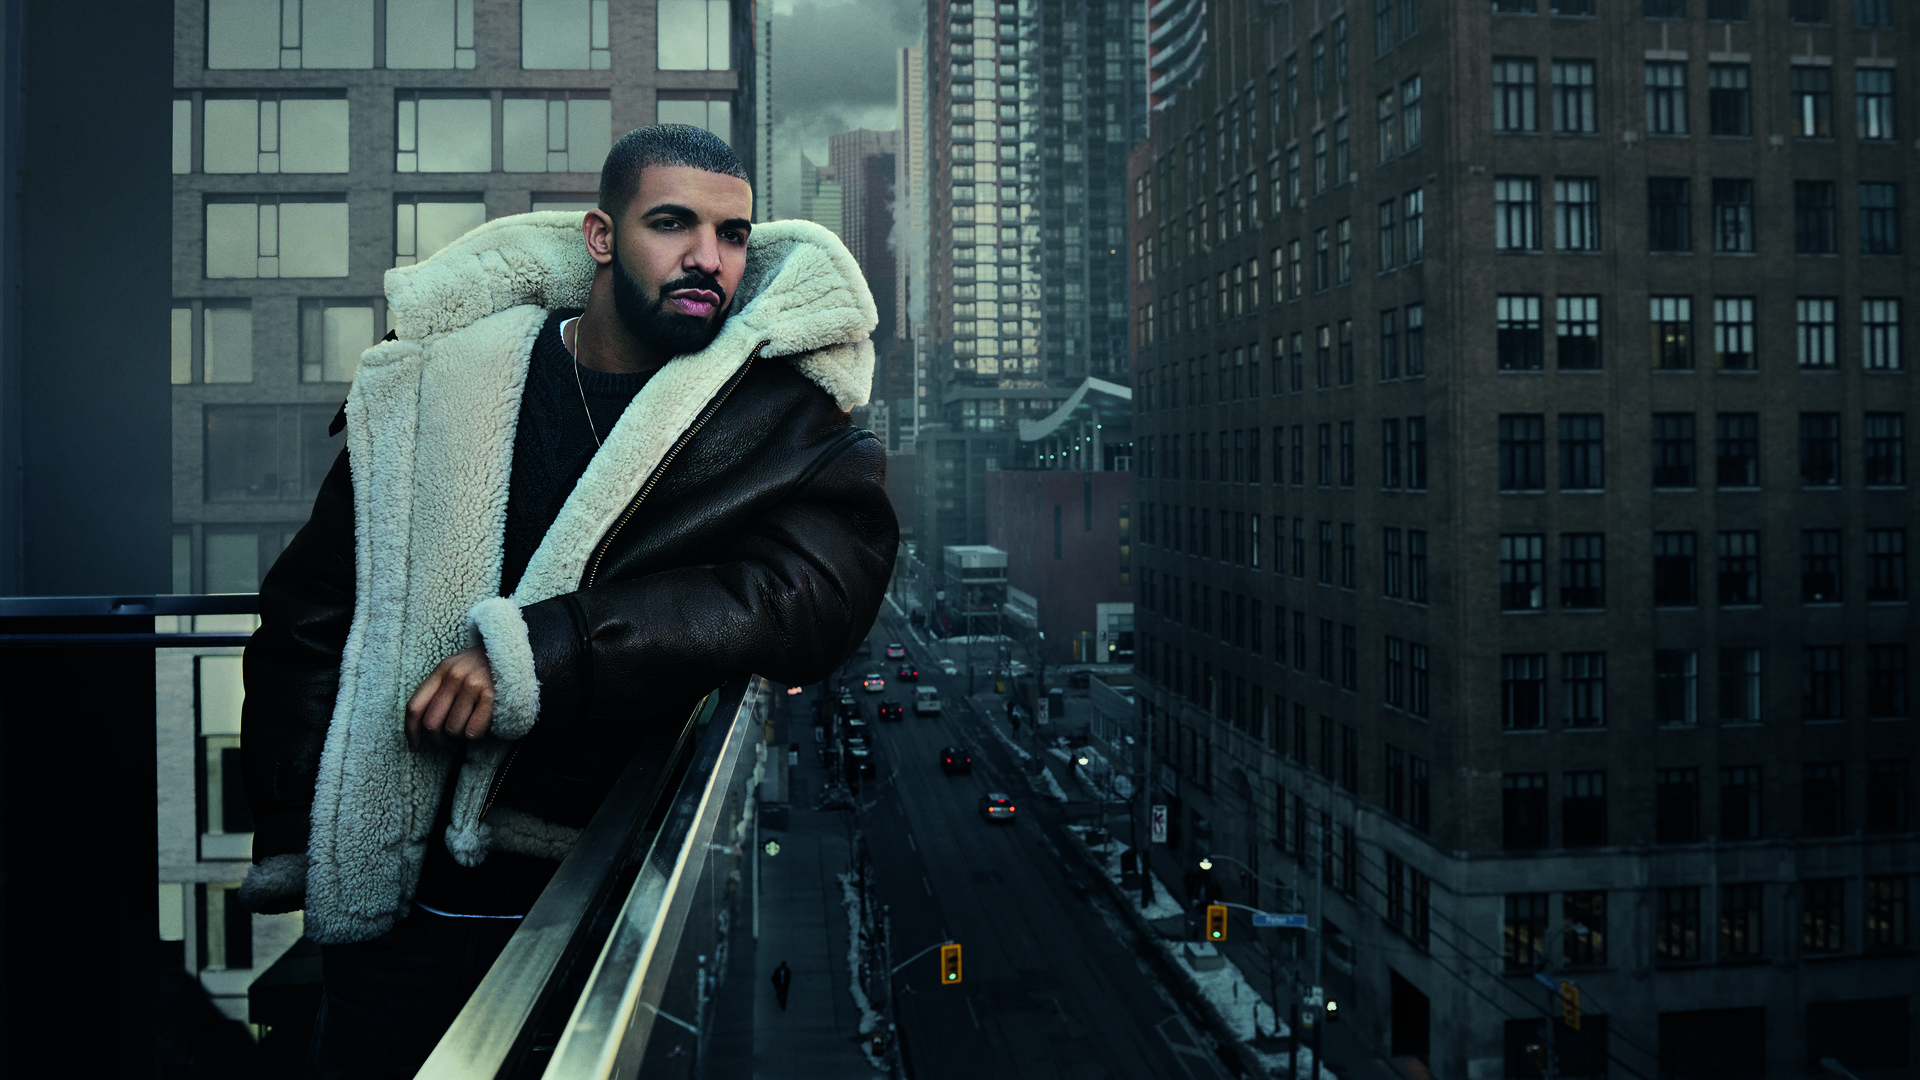 1920x1080 Drake Singer Laptop Full HD 1080P 4k Wallpapers Images